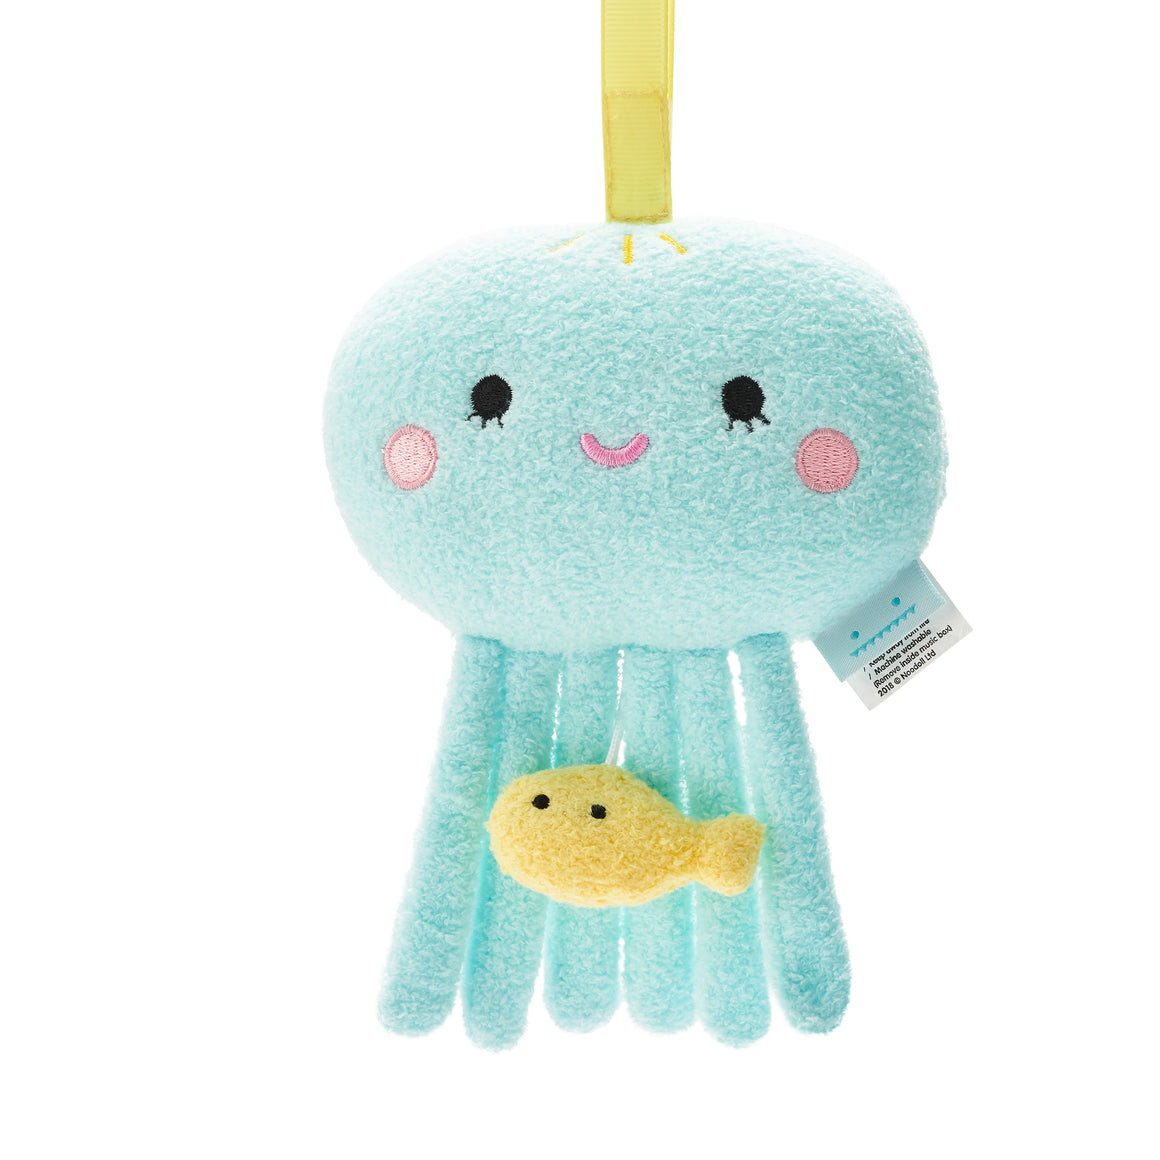 Noodoll - Music Mobile - Ricejelly Jellyfish